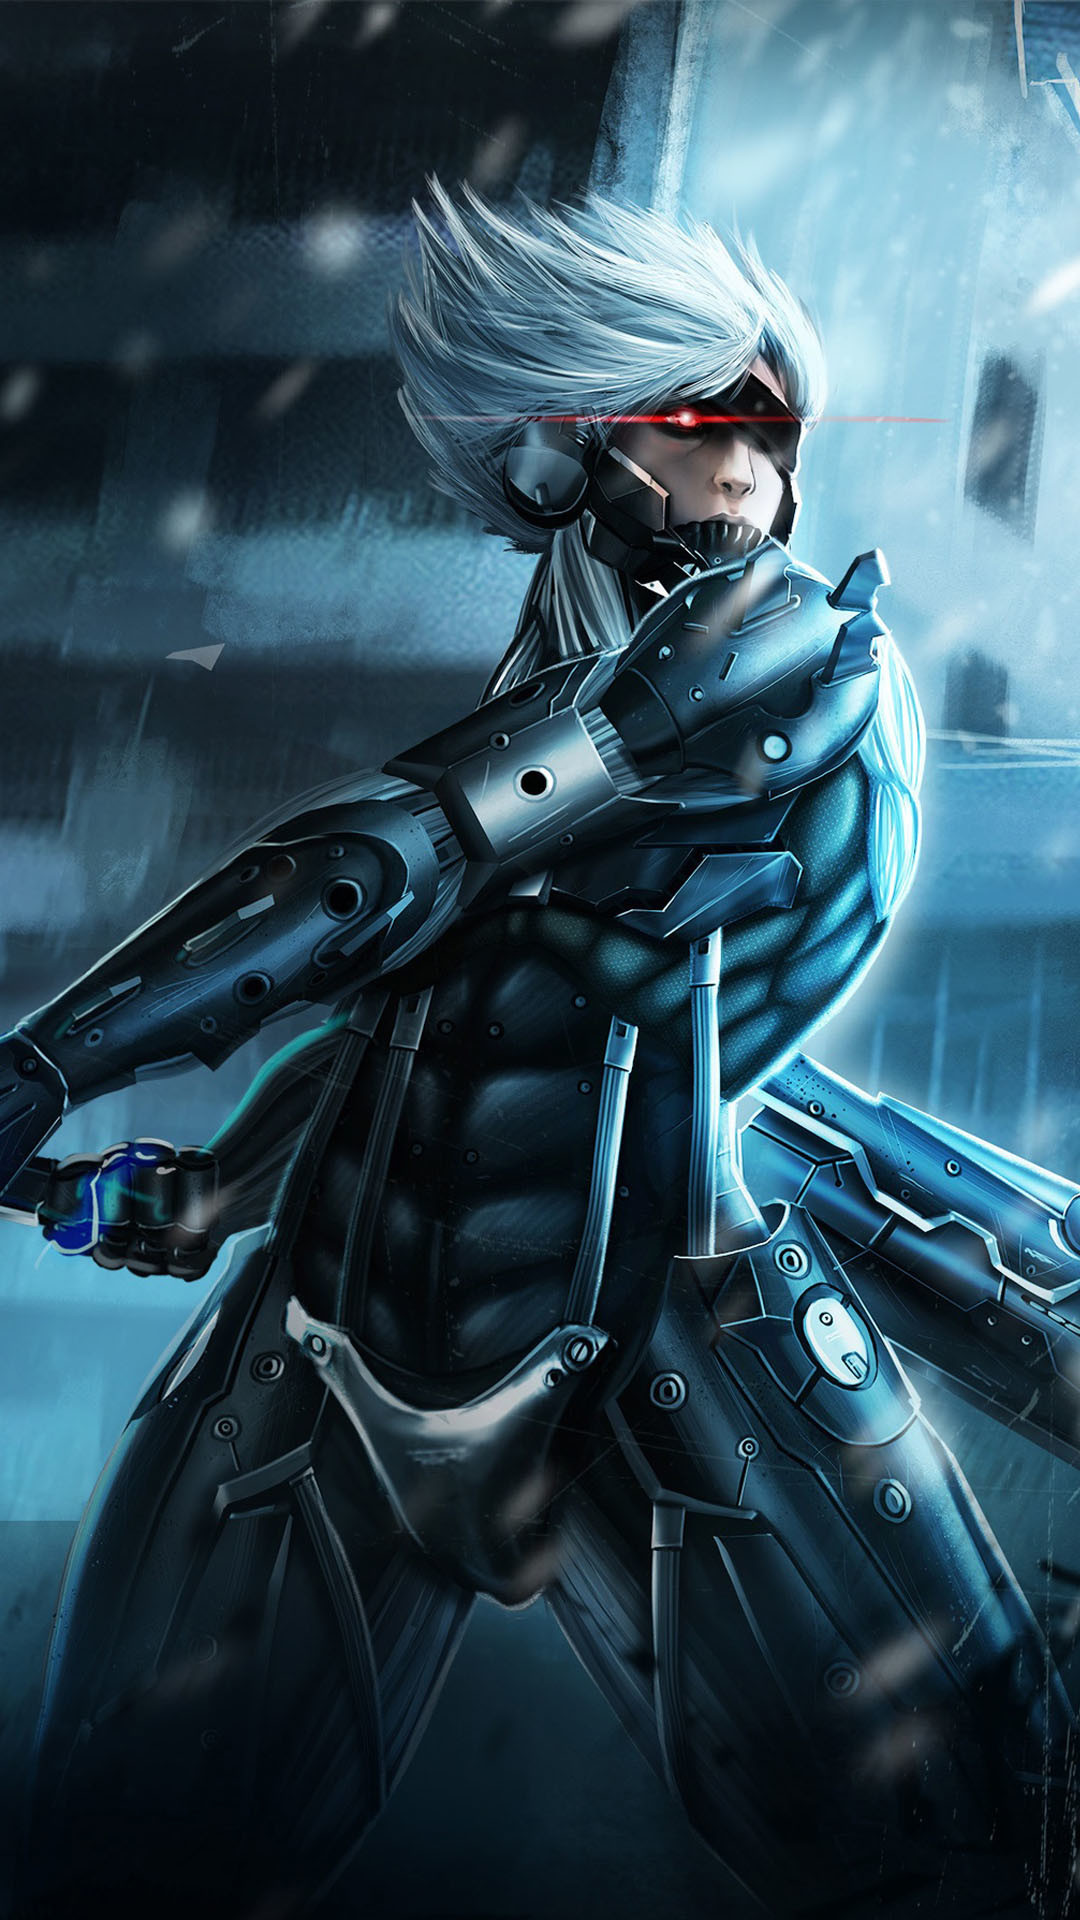 Metal Gear Rising Raiden iPhone 6 / 6 Plus and iPhone 5/4 Wallpapers